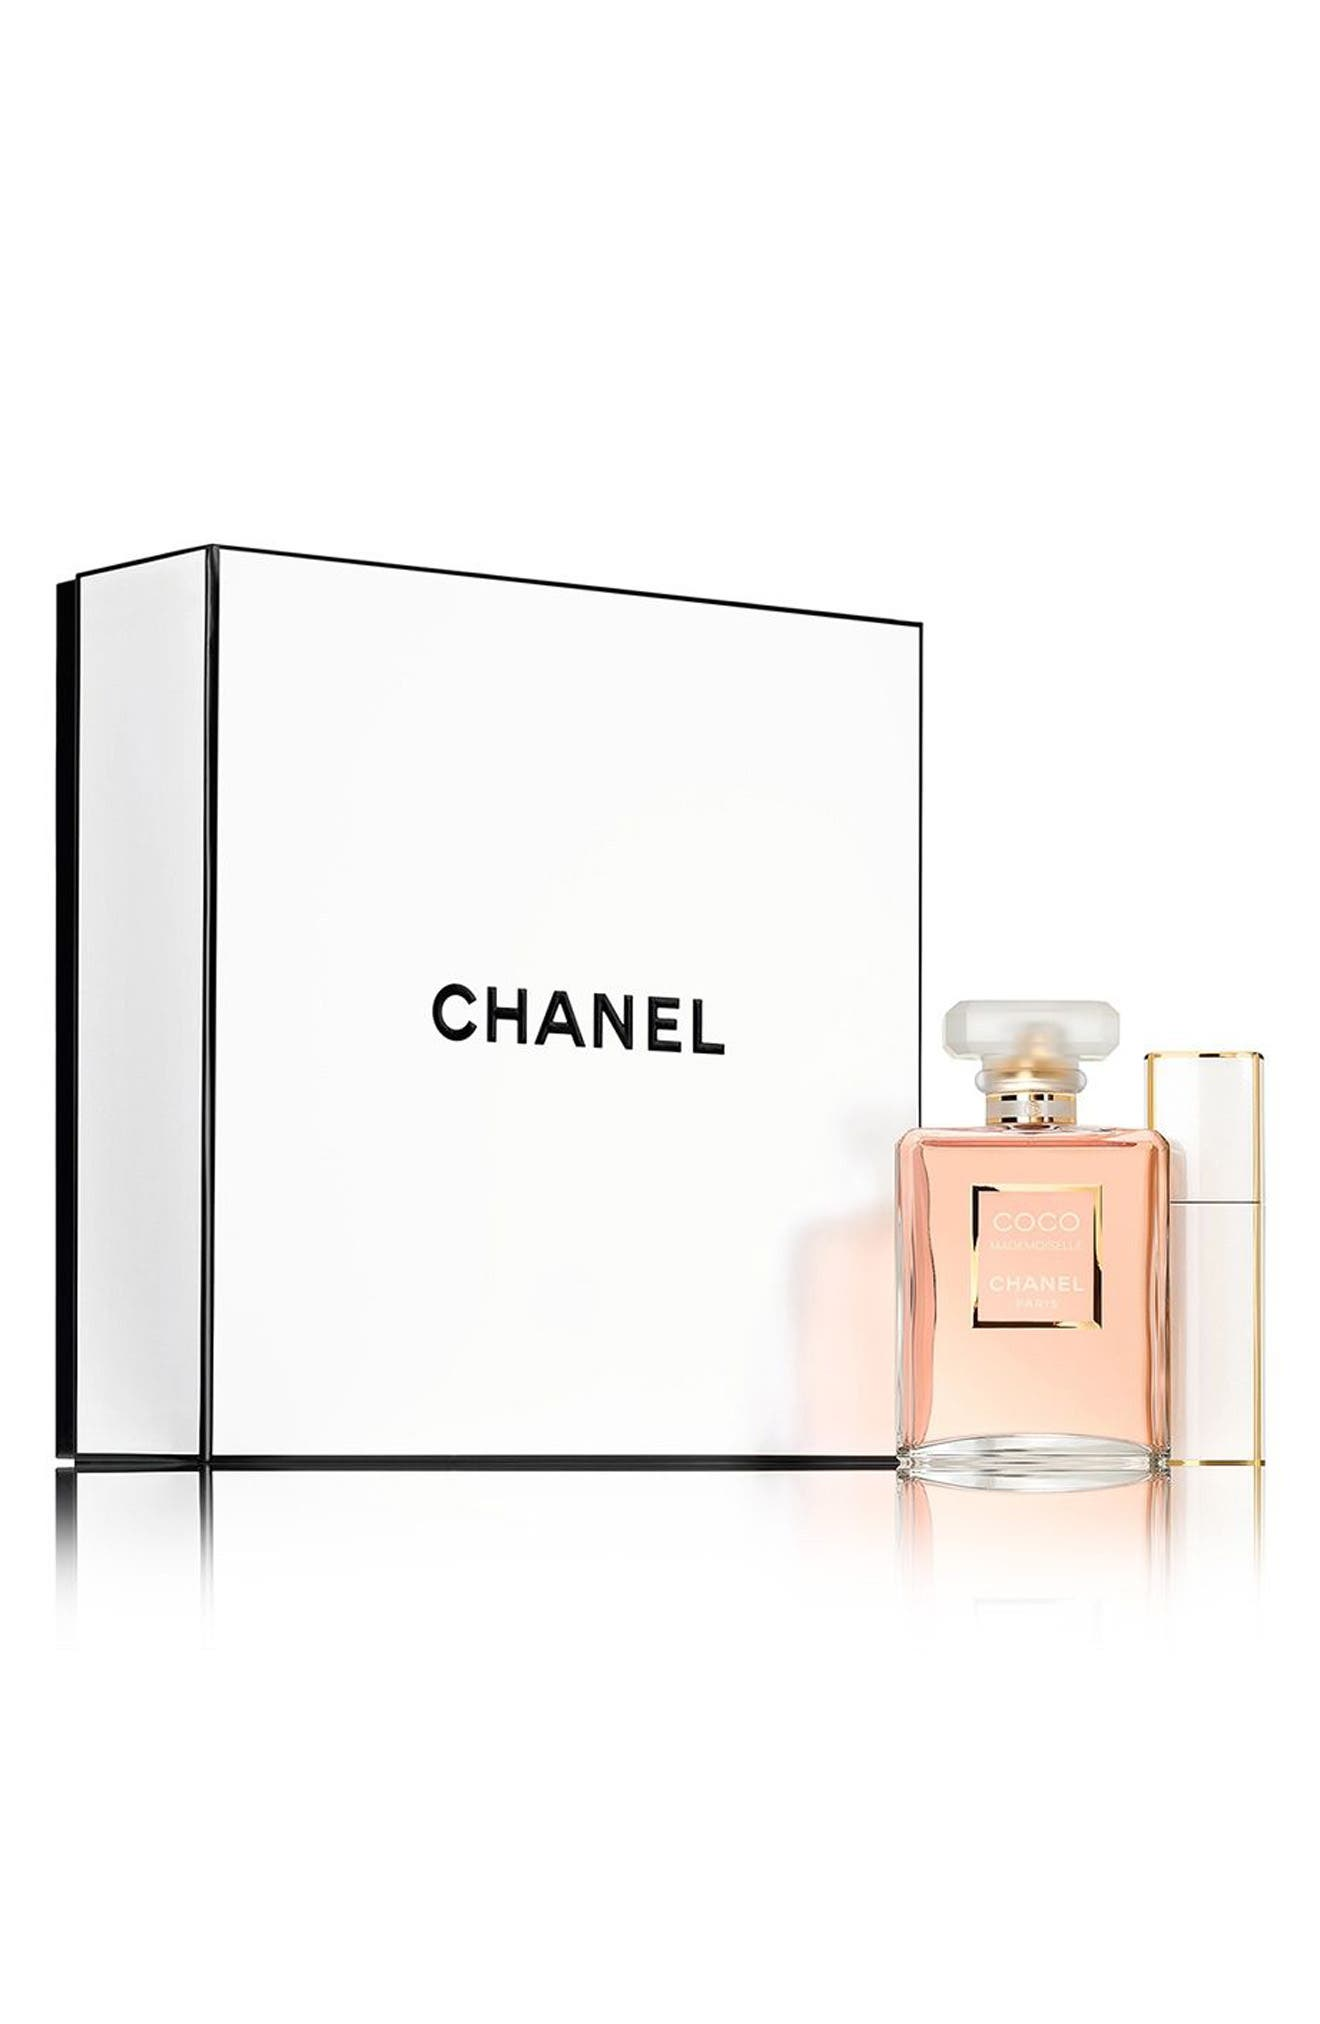 CHANEL COCO MADEMOISELLE Twist & Spray Set